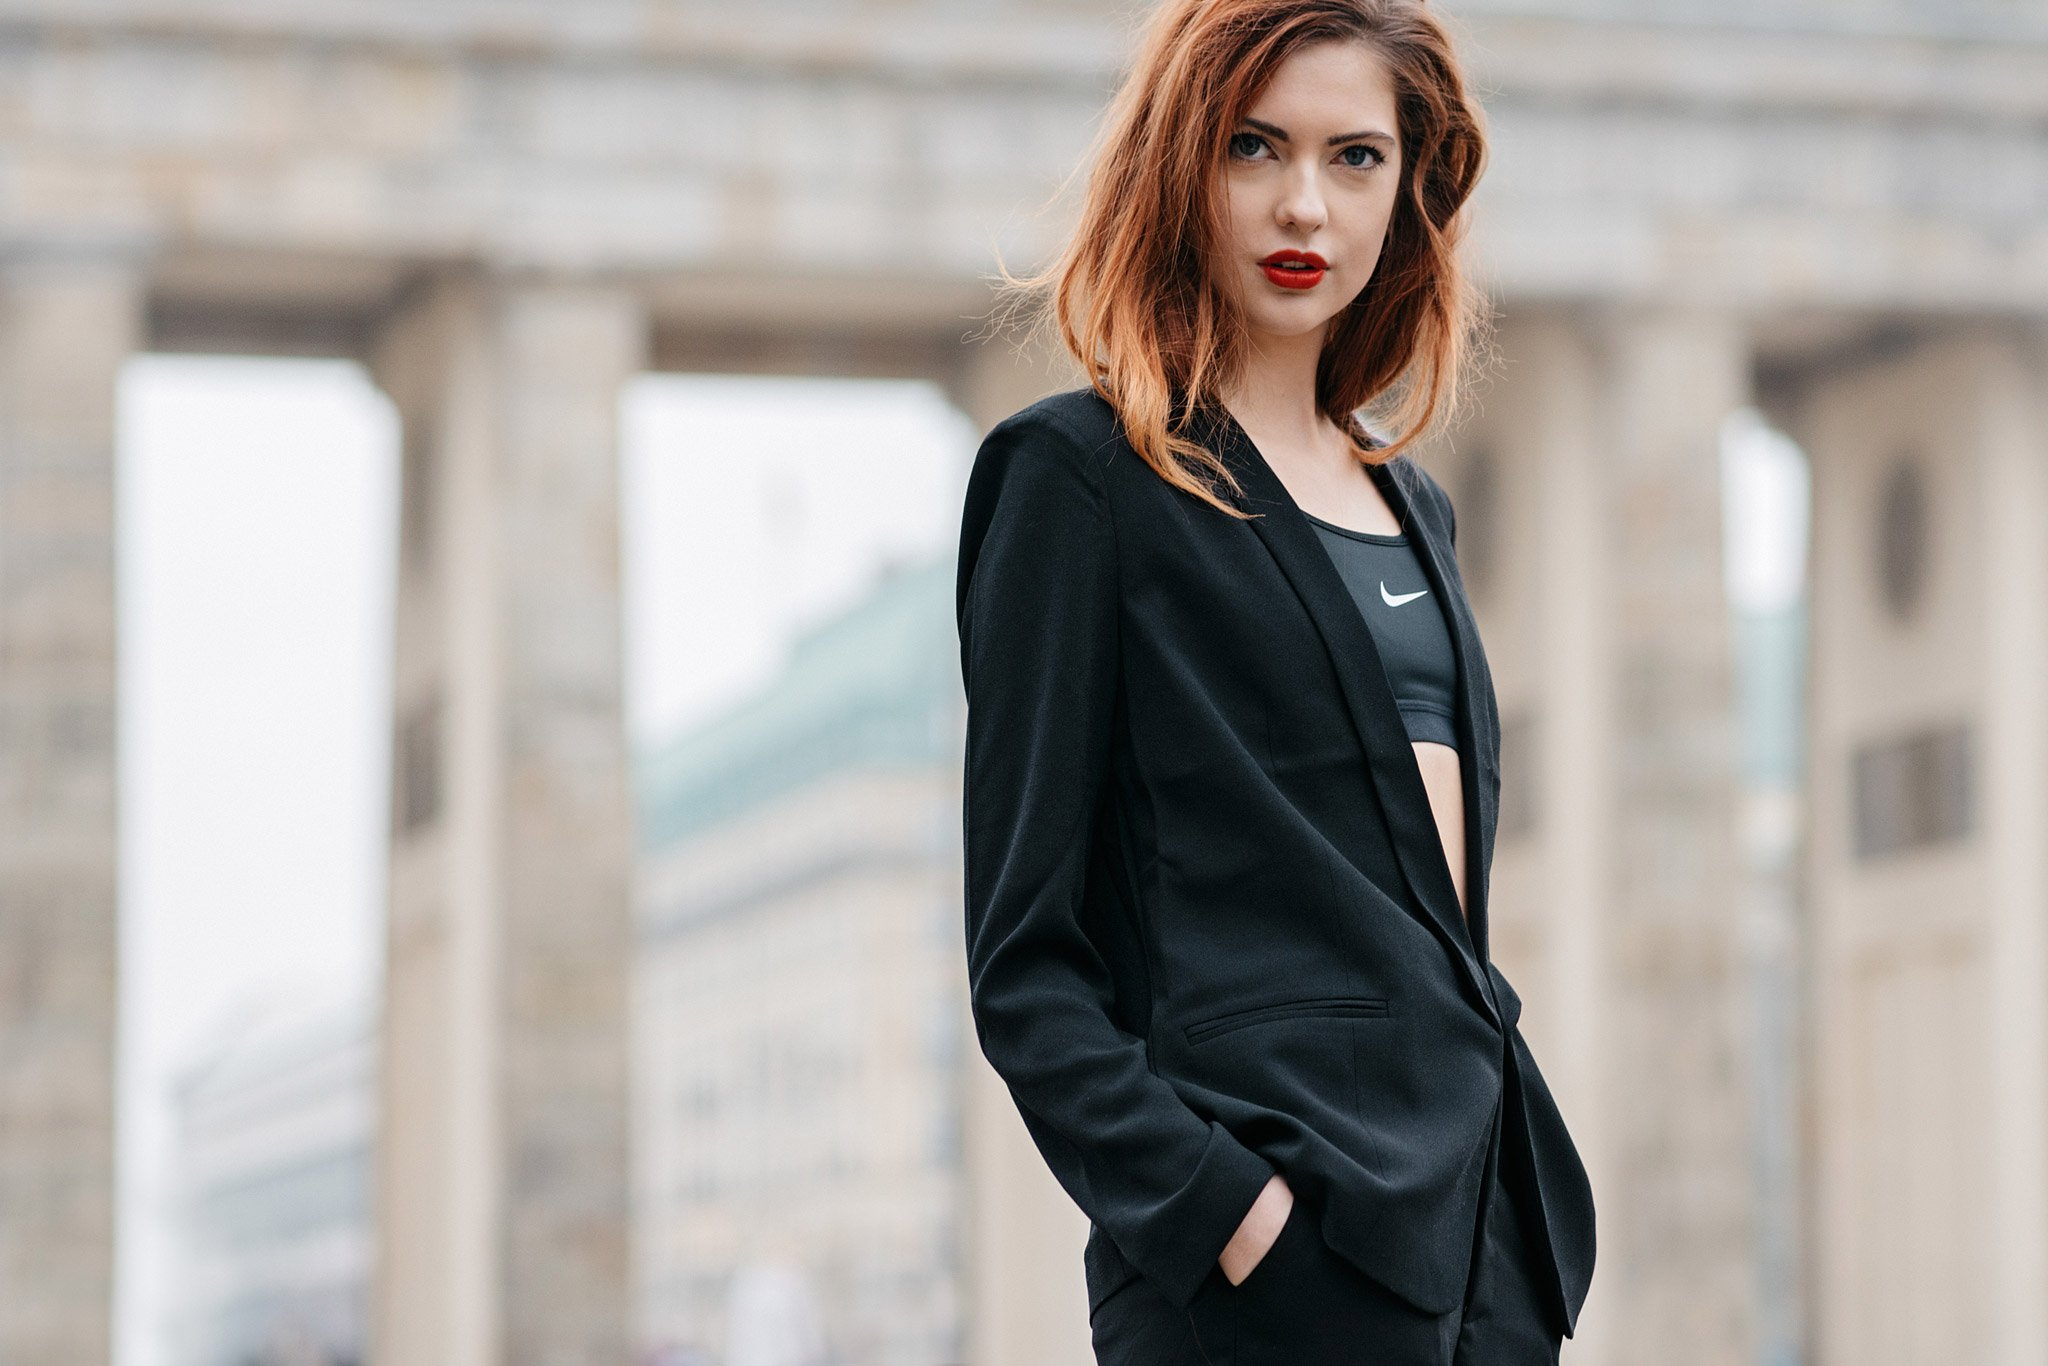 05-berlin-fashion-week-fall-2015-street-style-01